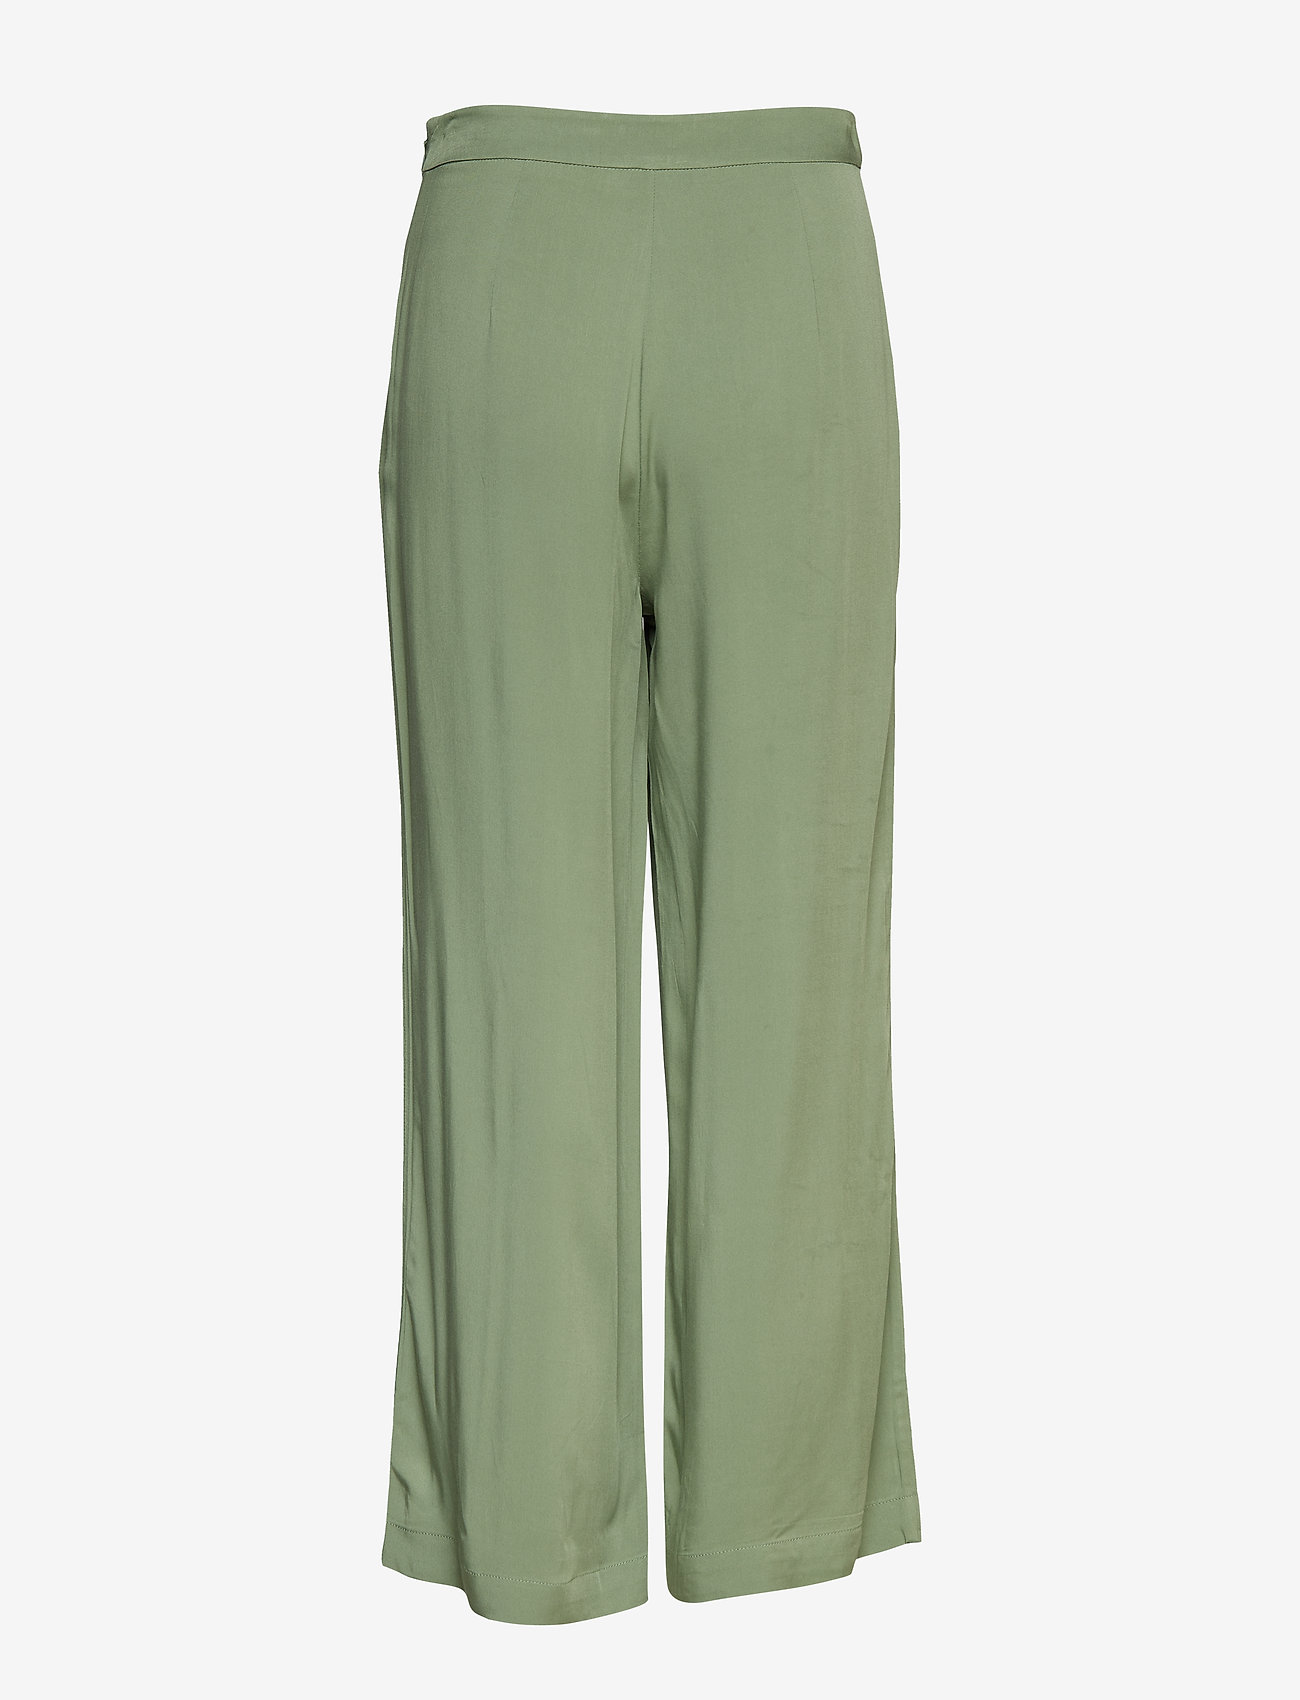 Camilla Pihl - Fancy Trousers - leveälahkeiset housut - washed army